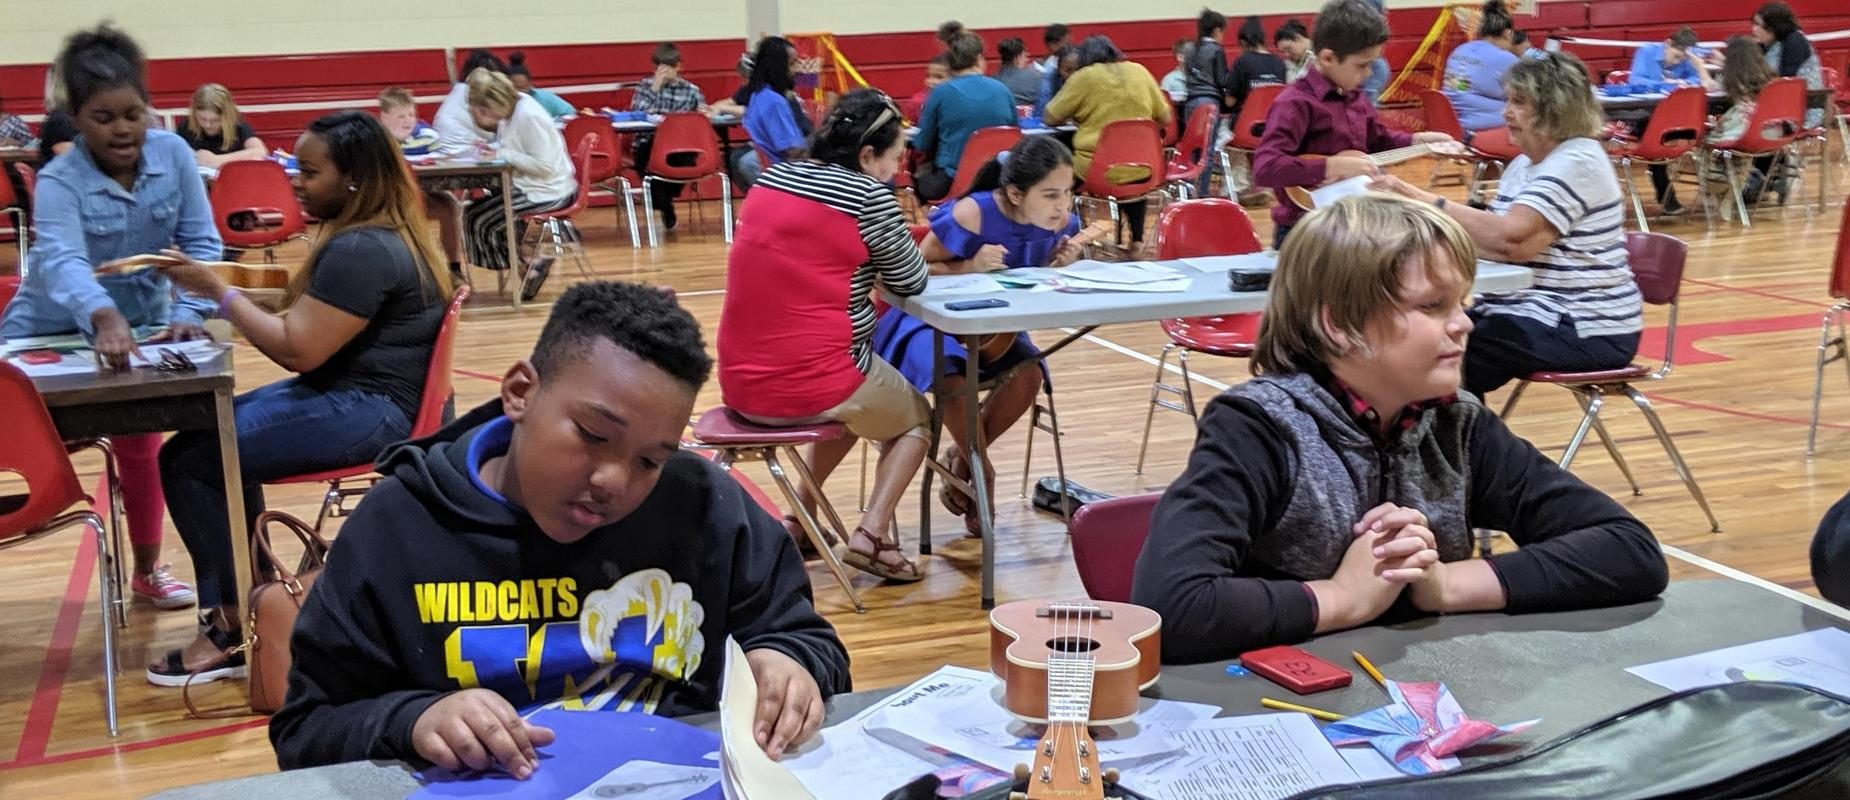 students in gym at tables doing music activities with parents